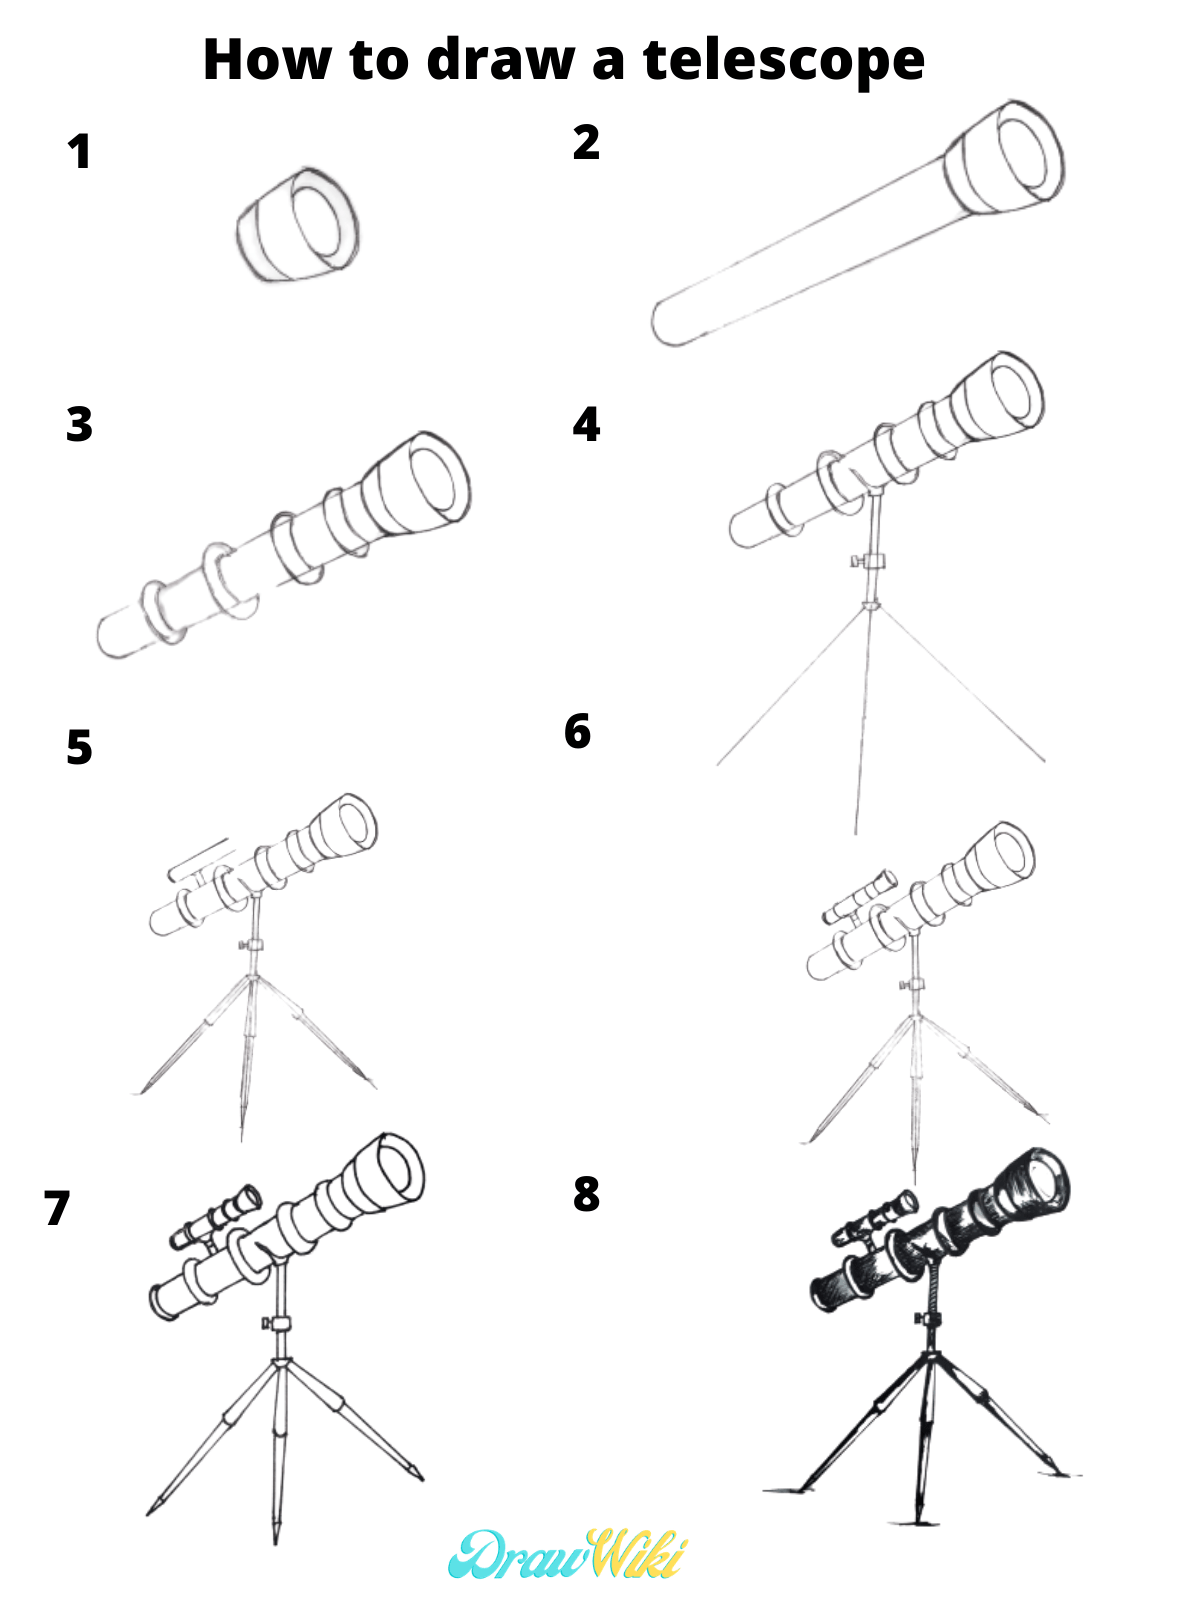 How to draw a telescope easy step by step guide